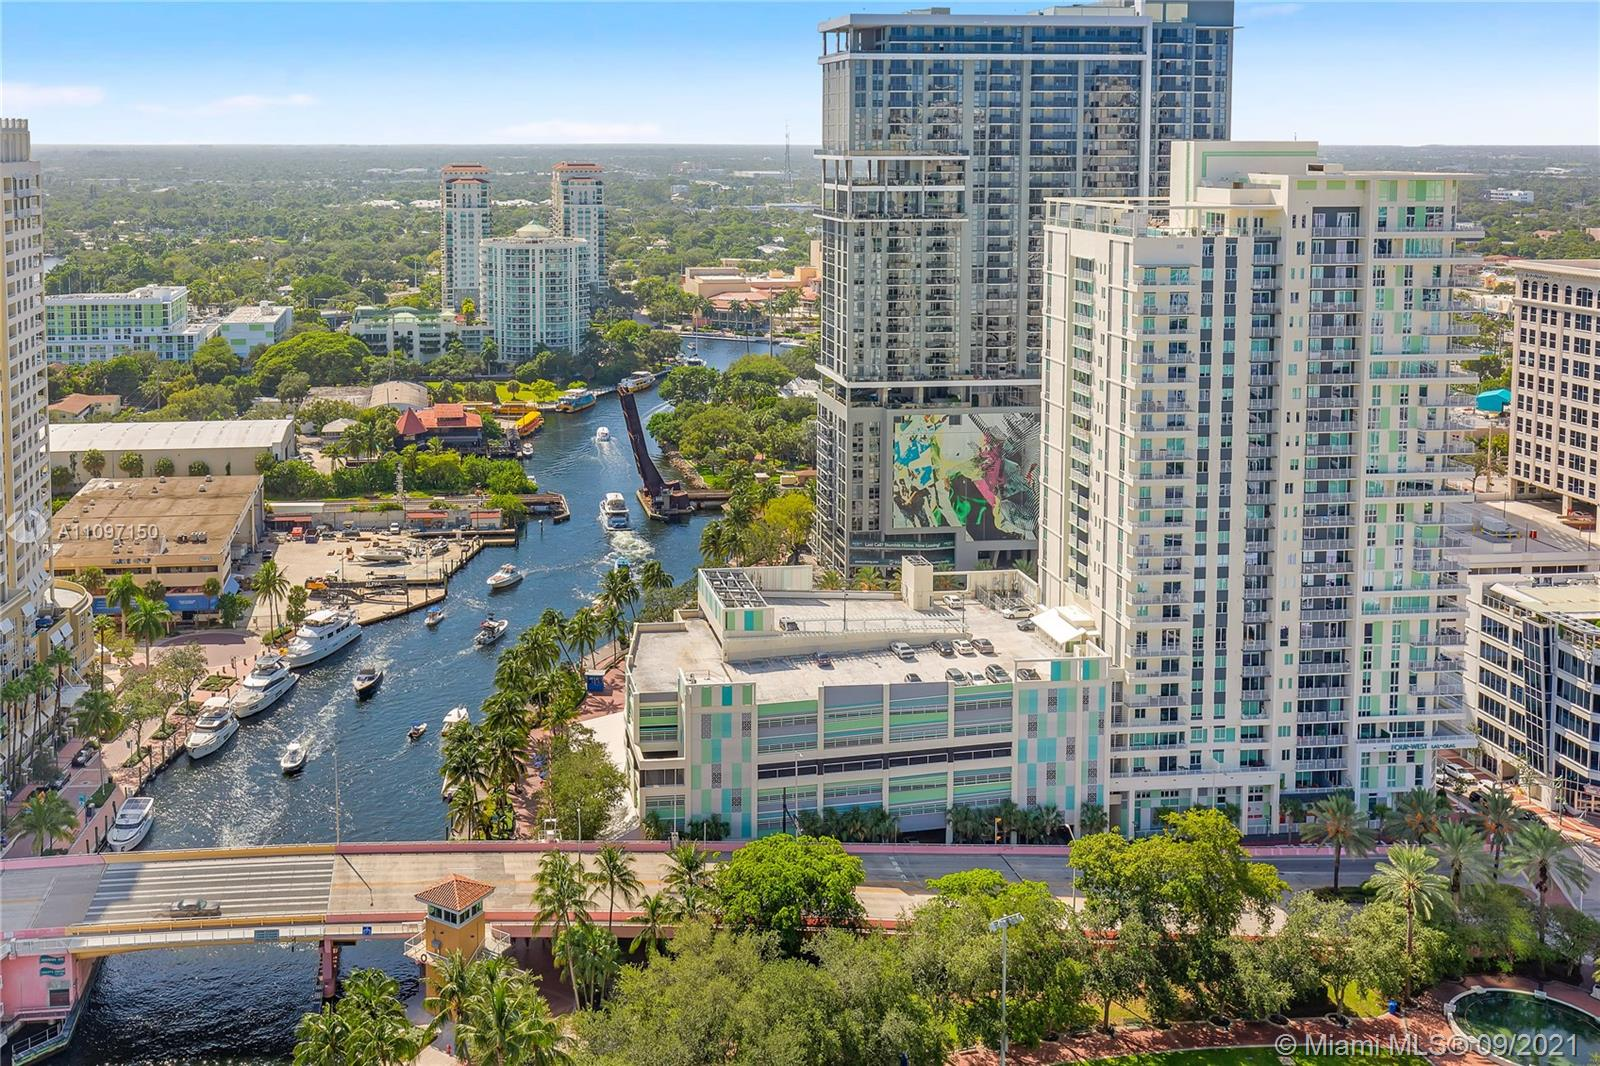 Dramatic high floor furnished Lexington offering 2/2.5 plus 2 balconies in iconic Las Olas River House. Impressive views east to the ocean, city skyline and west of stunning New River, pool deck and park! Each room has show stopping views! Private elevators take you to your private foyer, floor to ceiling glass, flow thru design & split floor plan. This special condo is furnished & accessorized...simply bring your toothbrush! River House provides a 5 Star lifestyle with award winning architecture, world class fitness center & tropical pool deck full of afternoon sun! 4M lobby renovation by Steven G is well underway & will be completed late 2021 with no assessment. New Hyatt Hotel, Eddie V's & Greenwise Grocery right outside the front doors. Don't delay, now is the time to buy! Location!